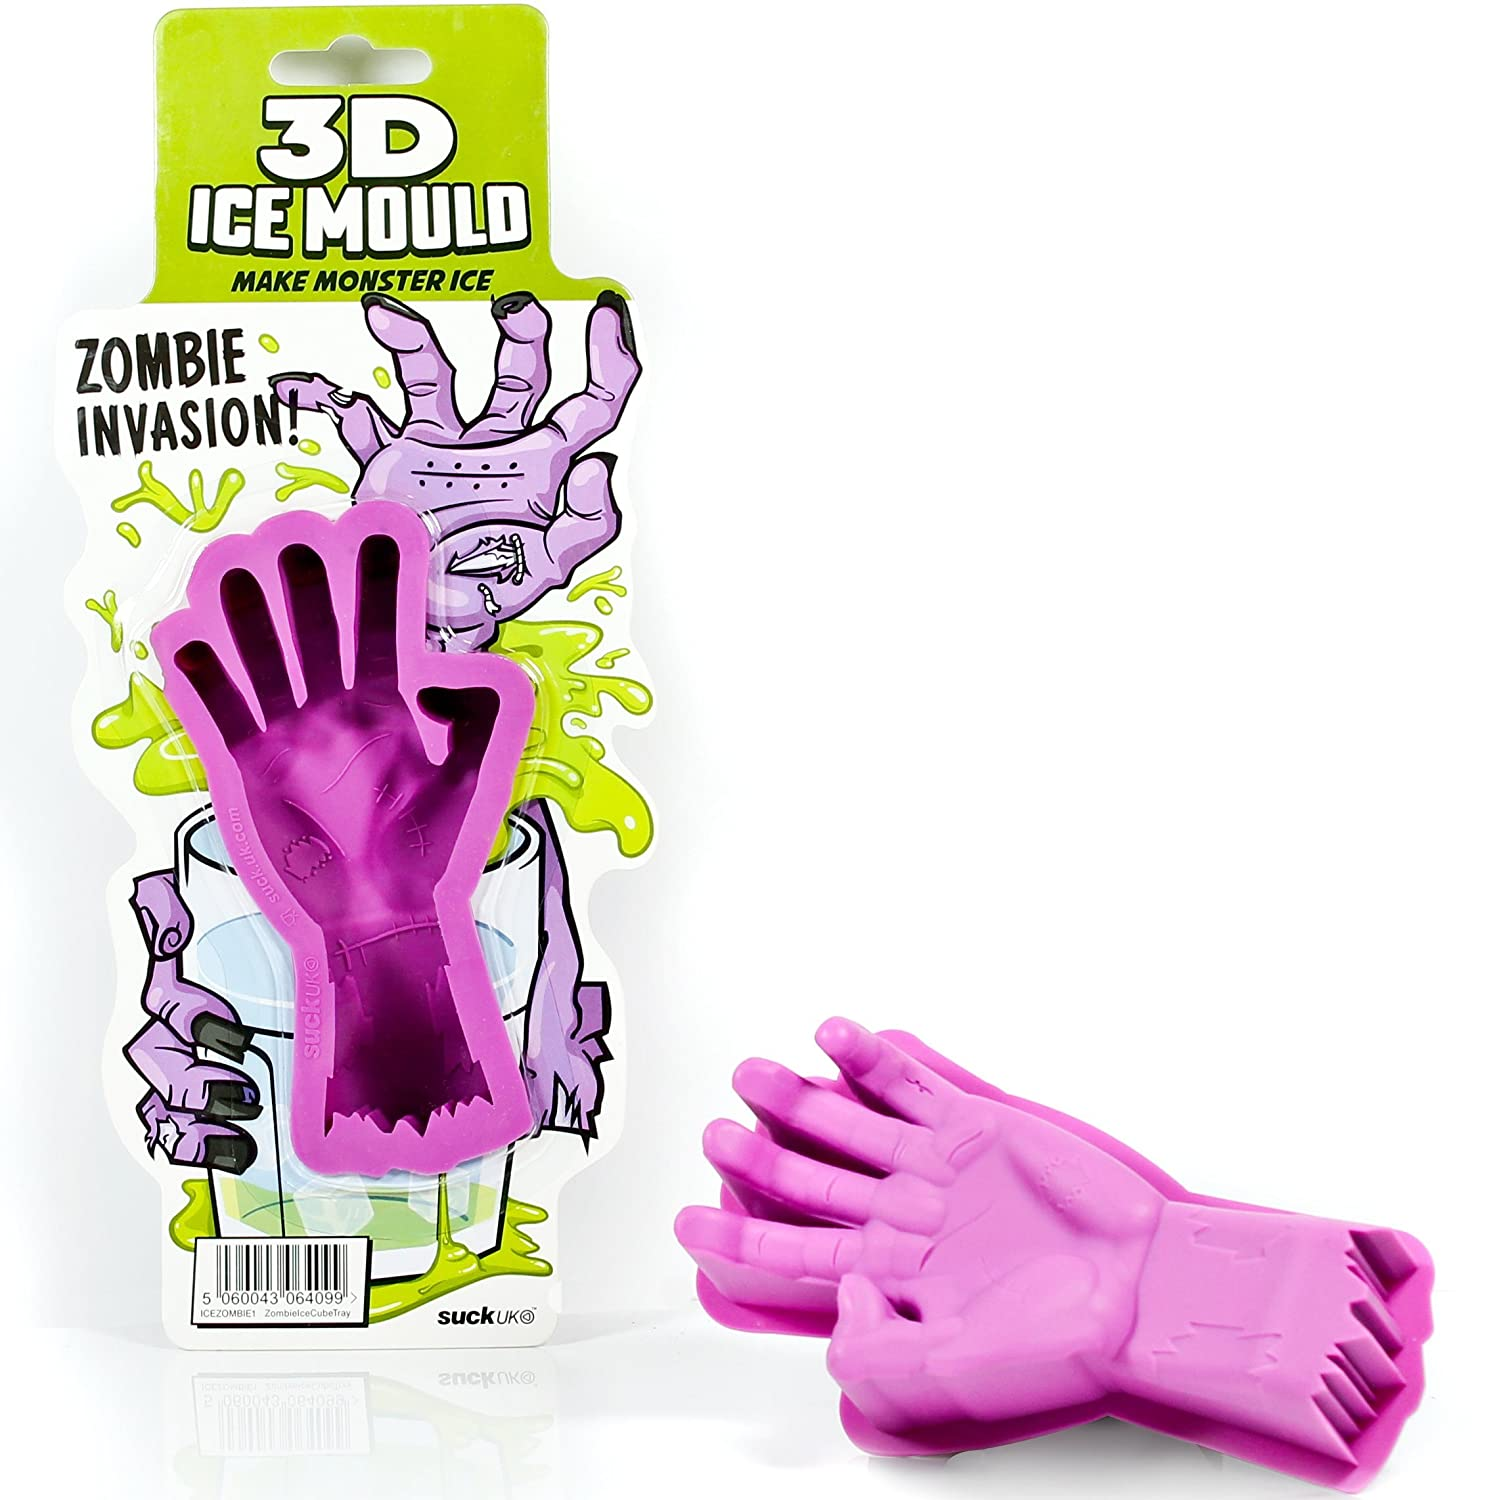 Amazon.com: SUCK UK 3D Zombie Hand Ice Mould: Ice Cube Molds ...